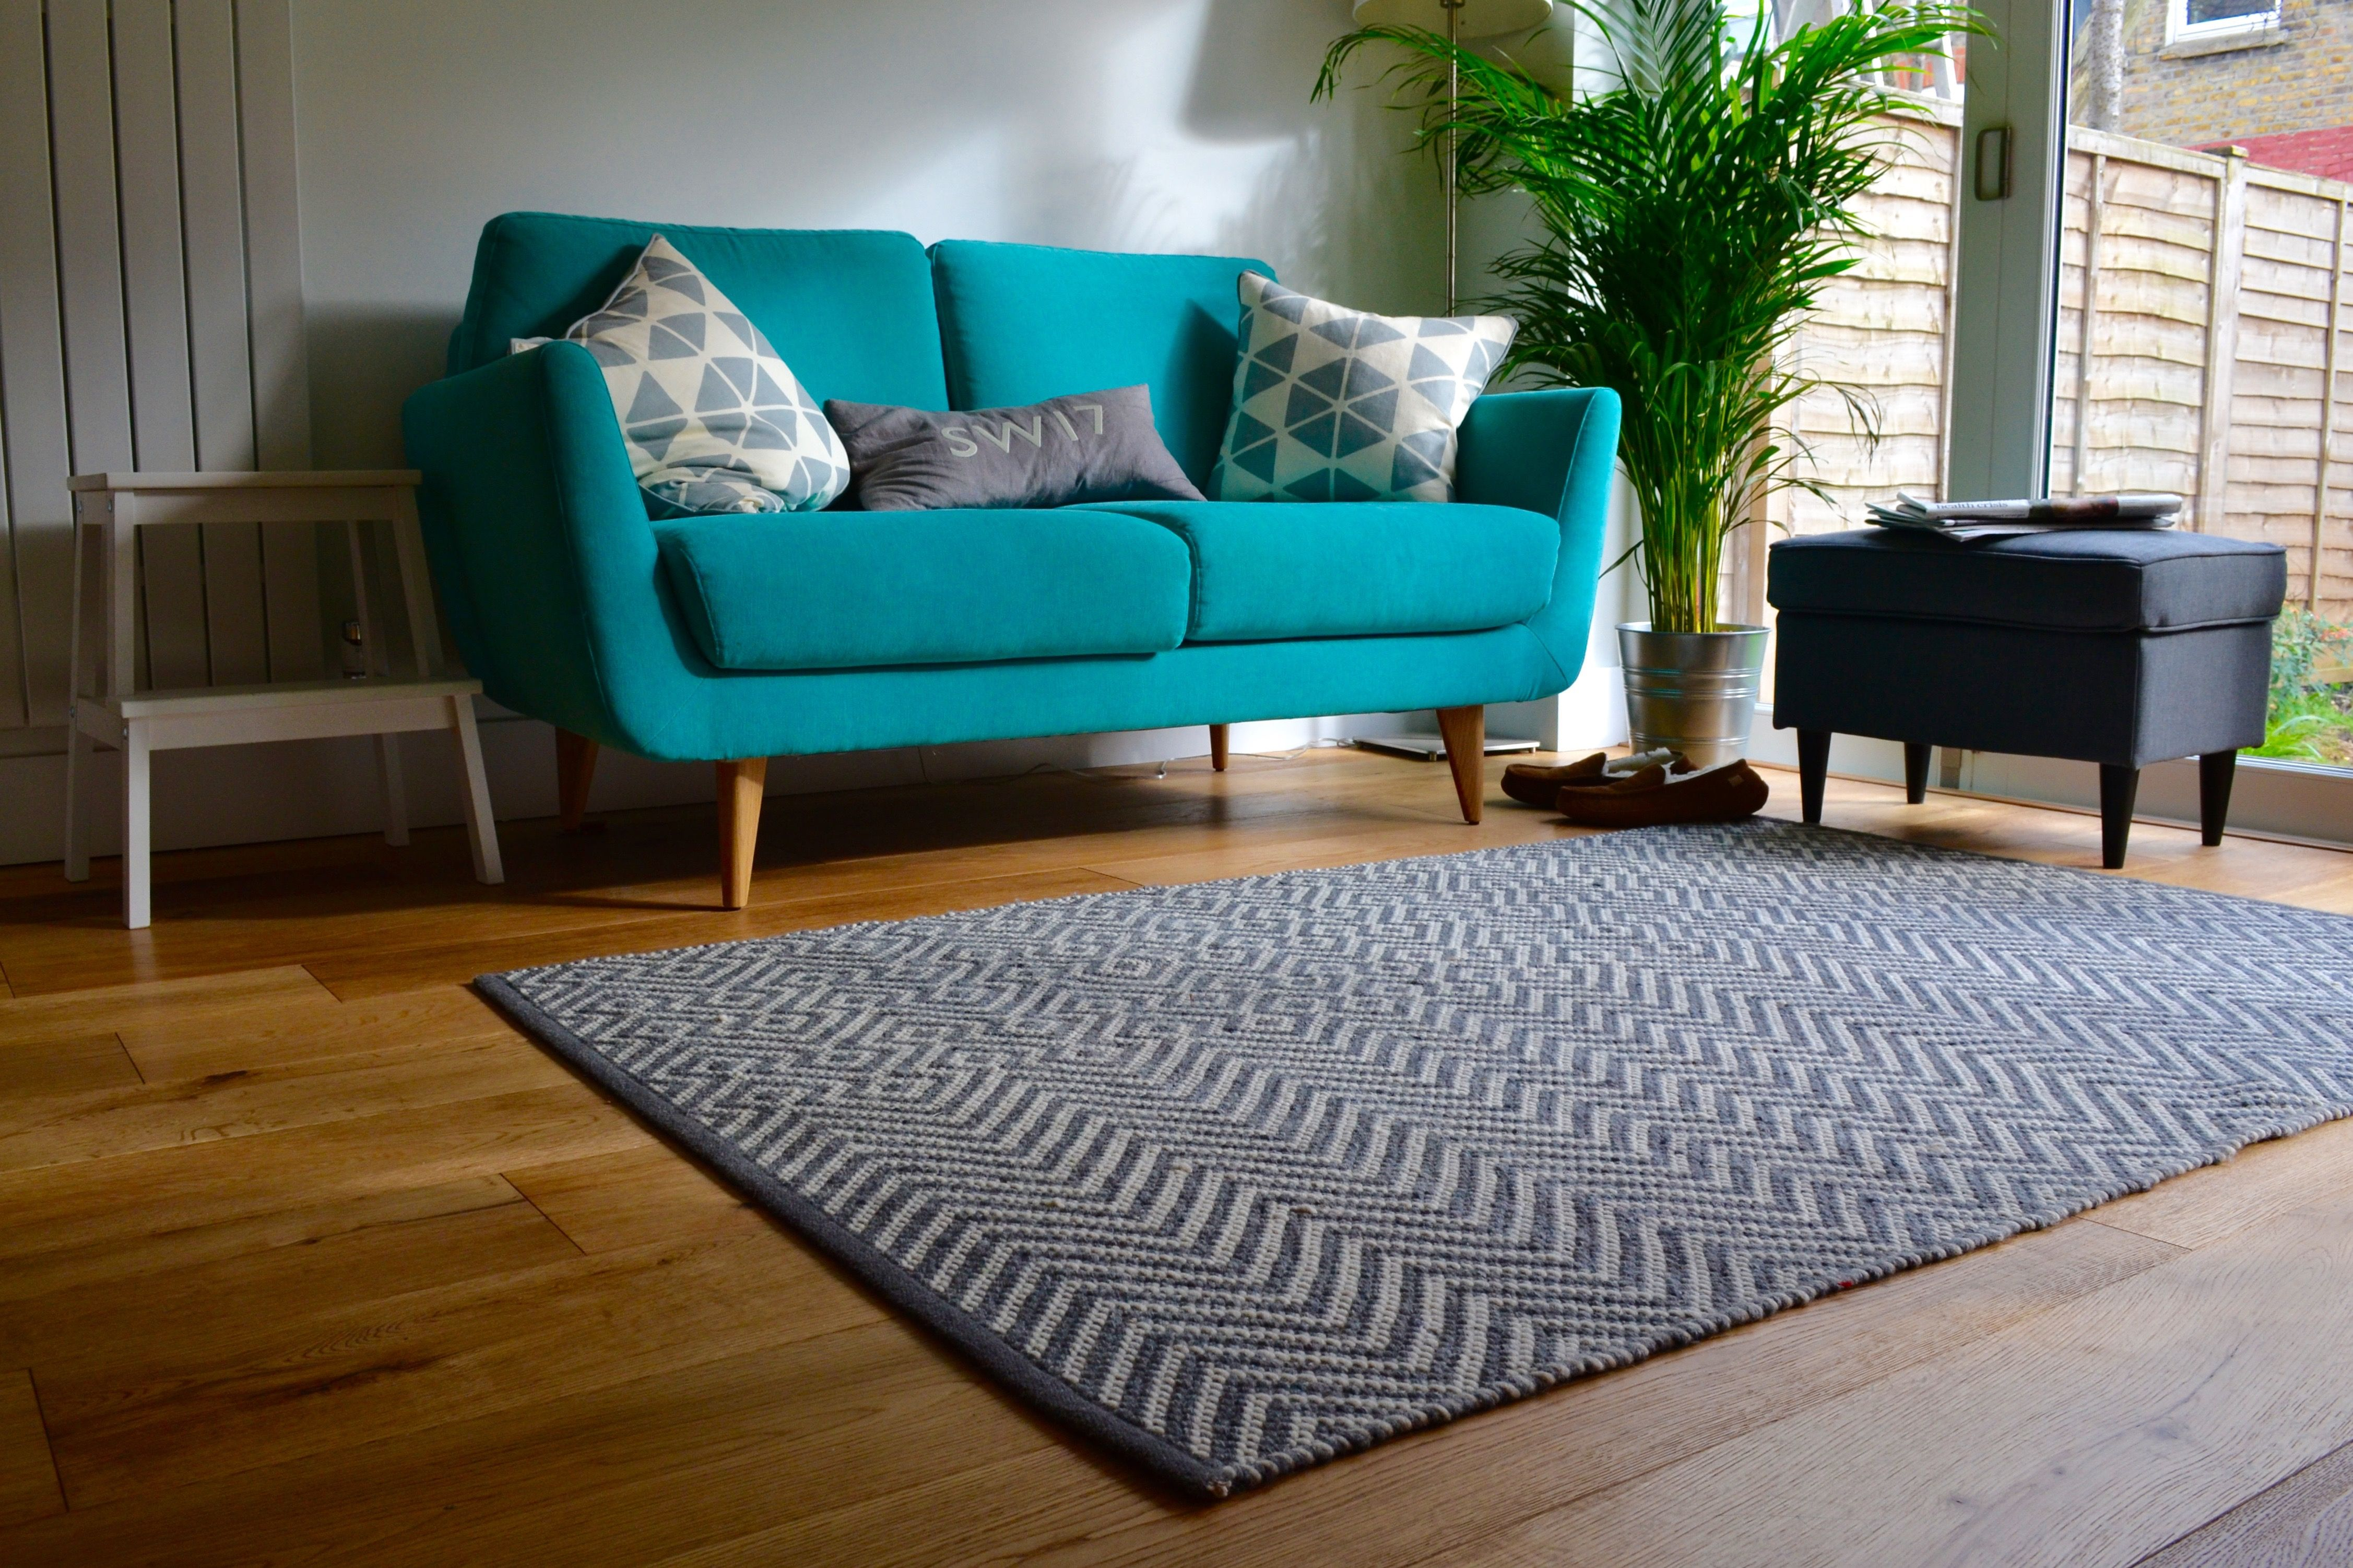 Rucola sofa and John Lewis rug in kitchen/diner extension with